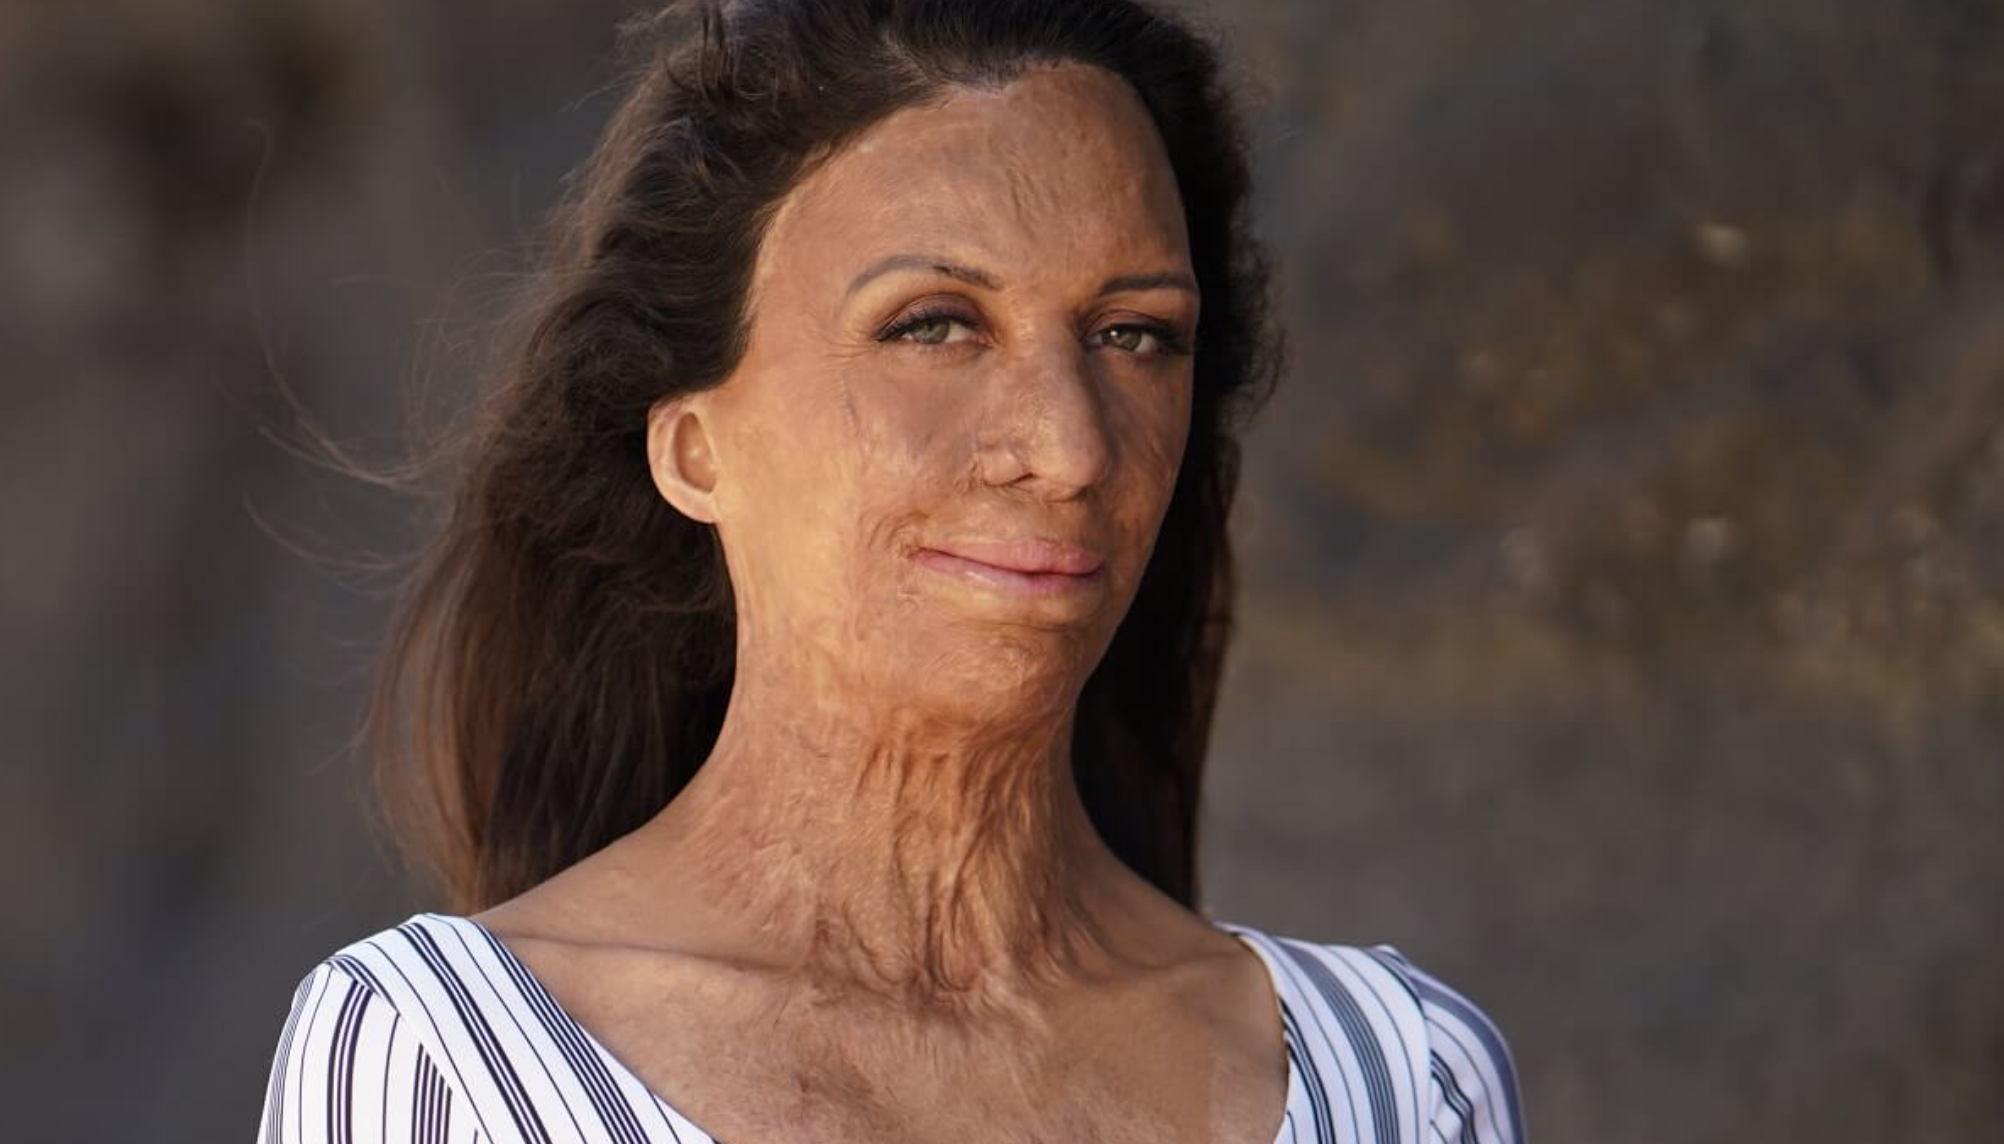 Turia Pitt on Happiness And Overcoming Adversity – Episode 29 of The Grace Tales Podcast